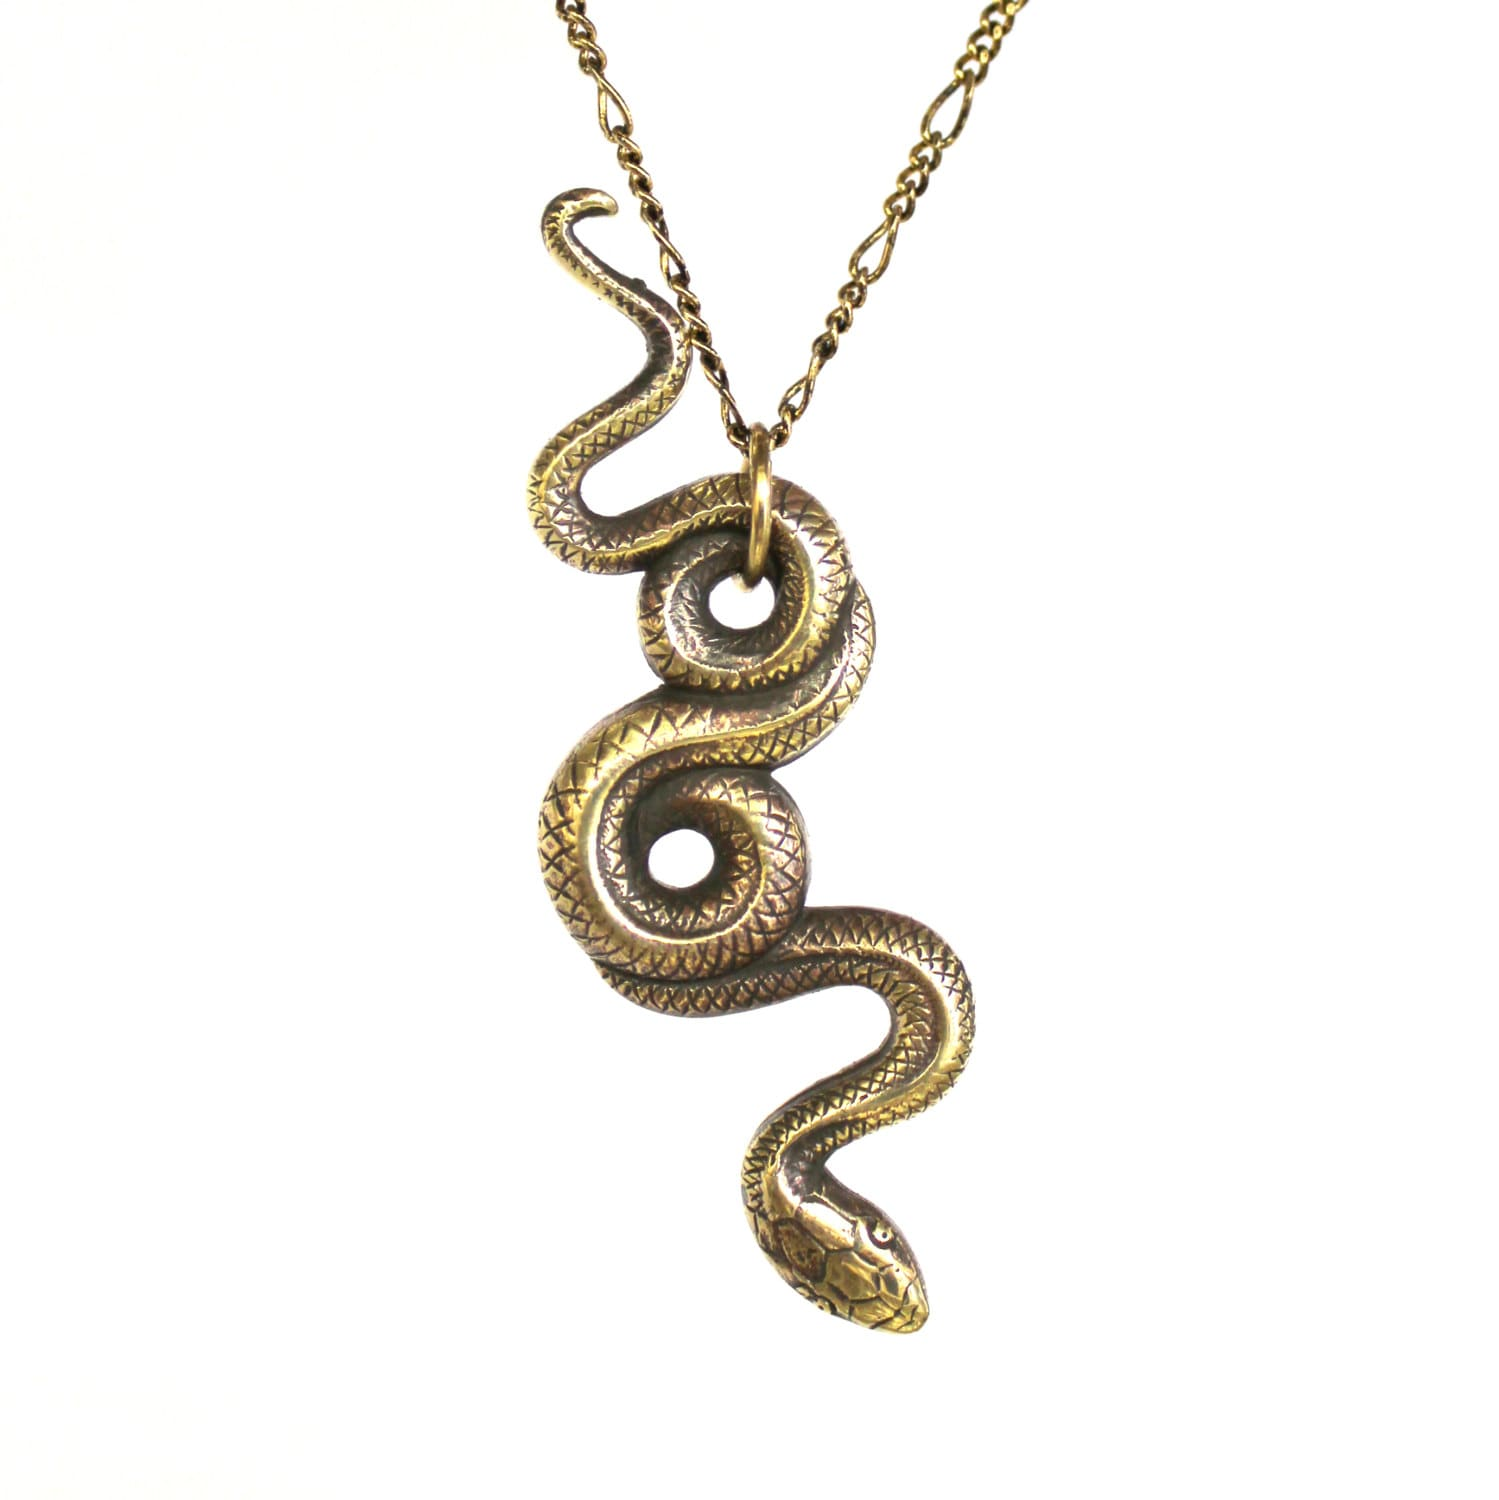 Garden snake necklace bronze snake pendant necklace serpent zoom mozeypictures Image collections